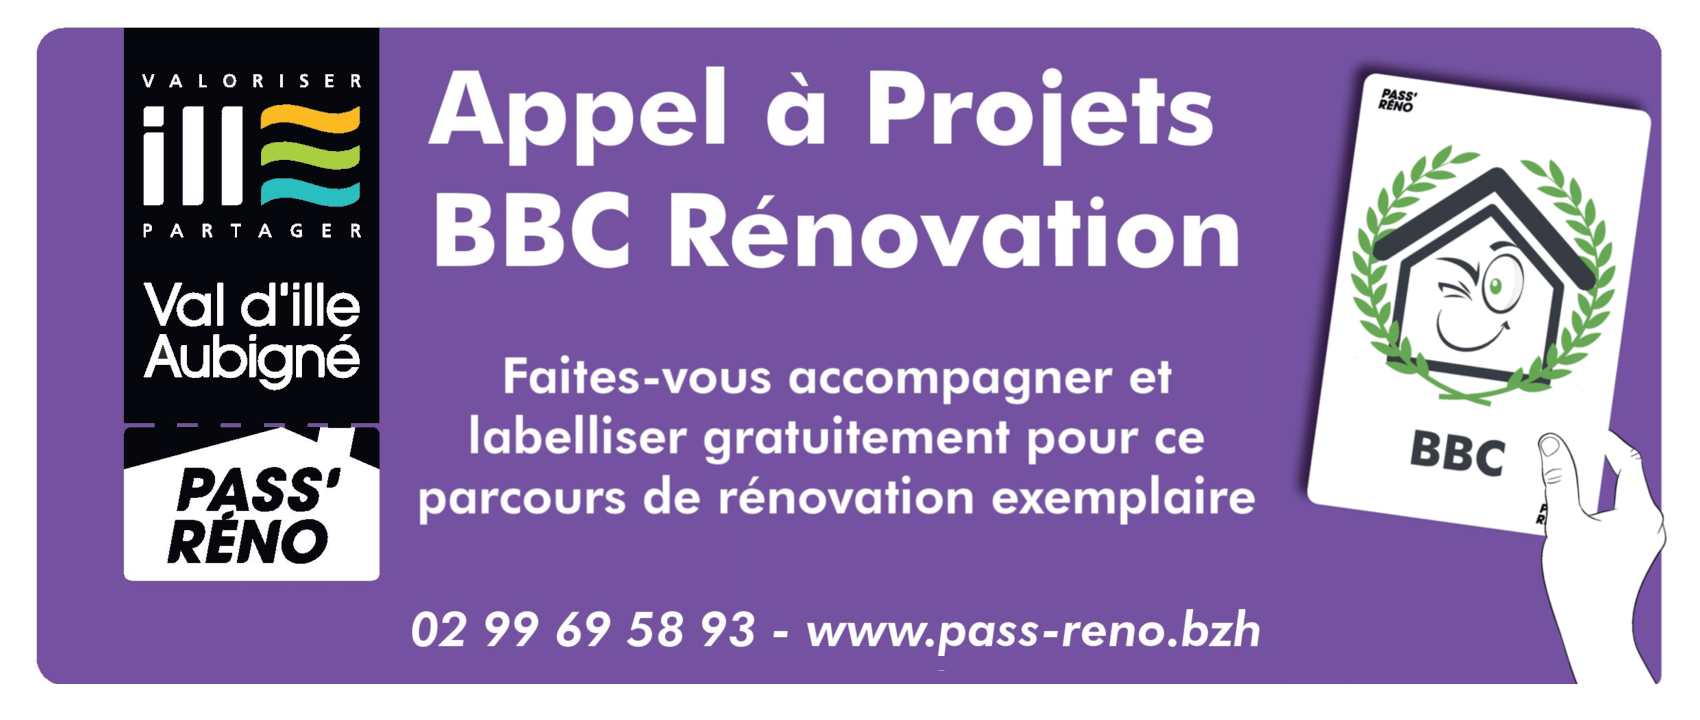 http://www.pass-reno.bzh/wp-content/uploads/2018/03/slider-bbc-via-1700-720.png